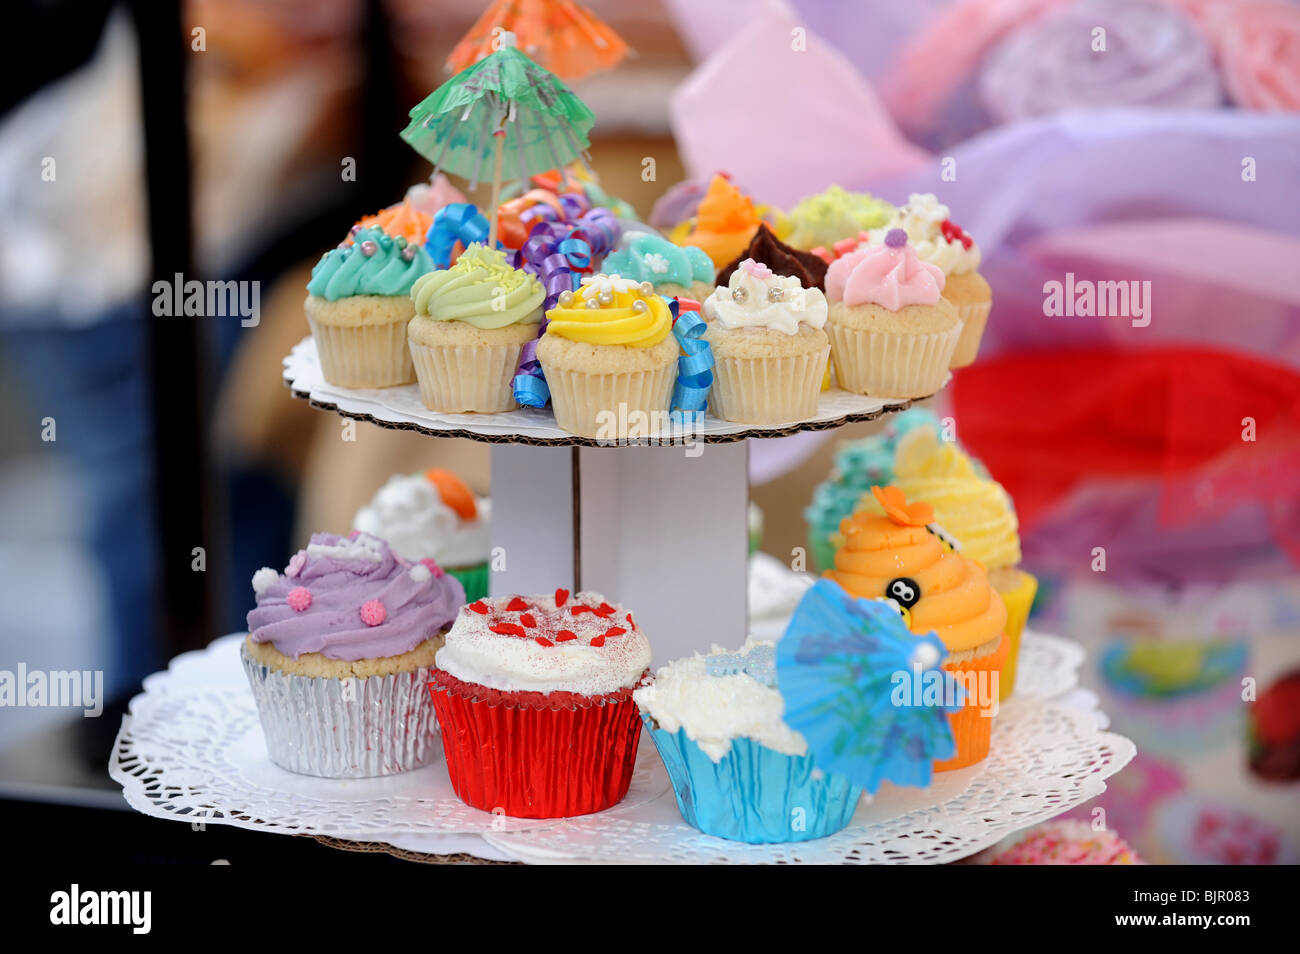 Beautifully decorated cup cakes - Stock Image